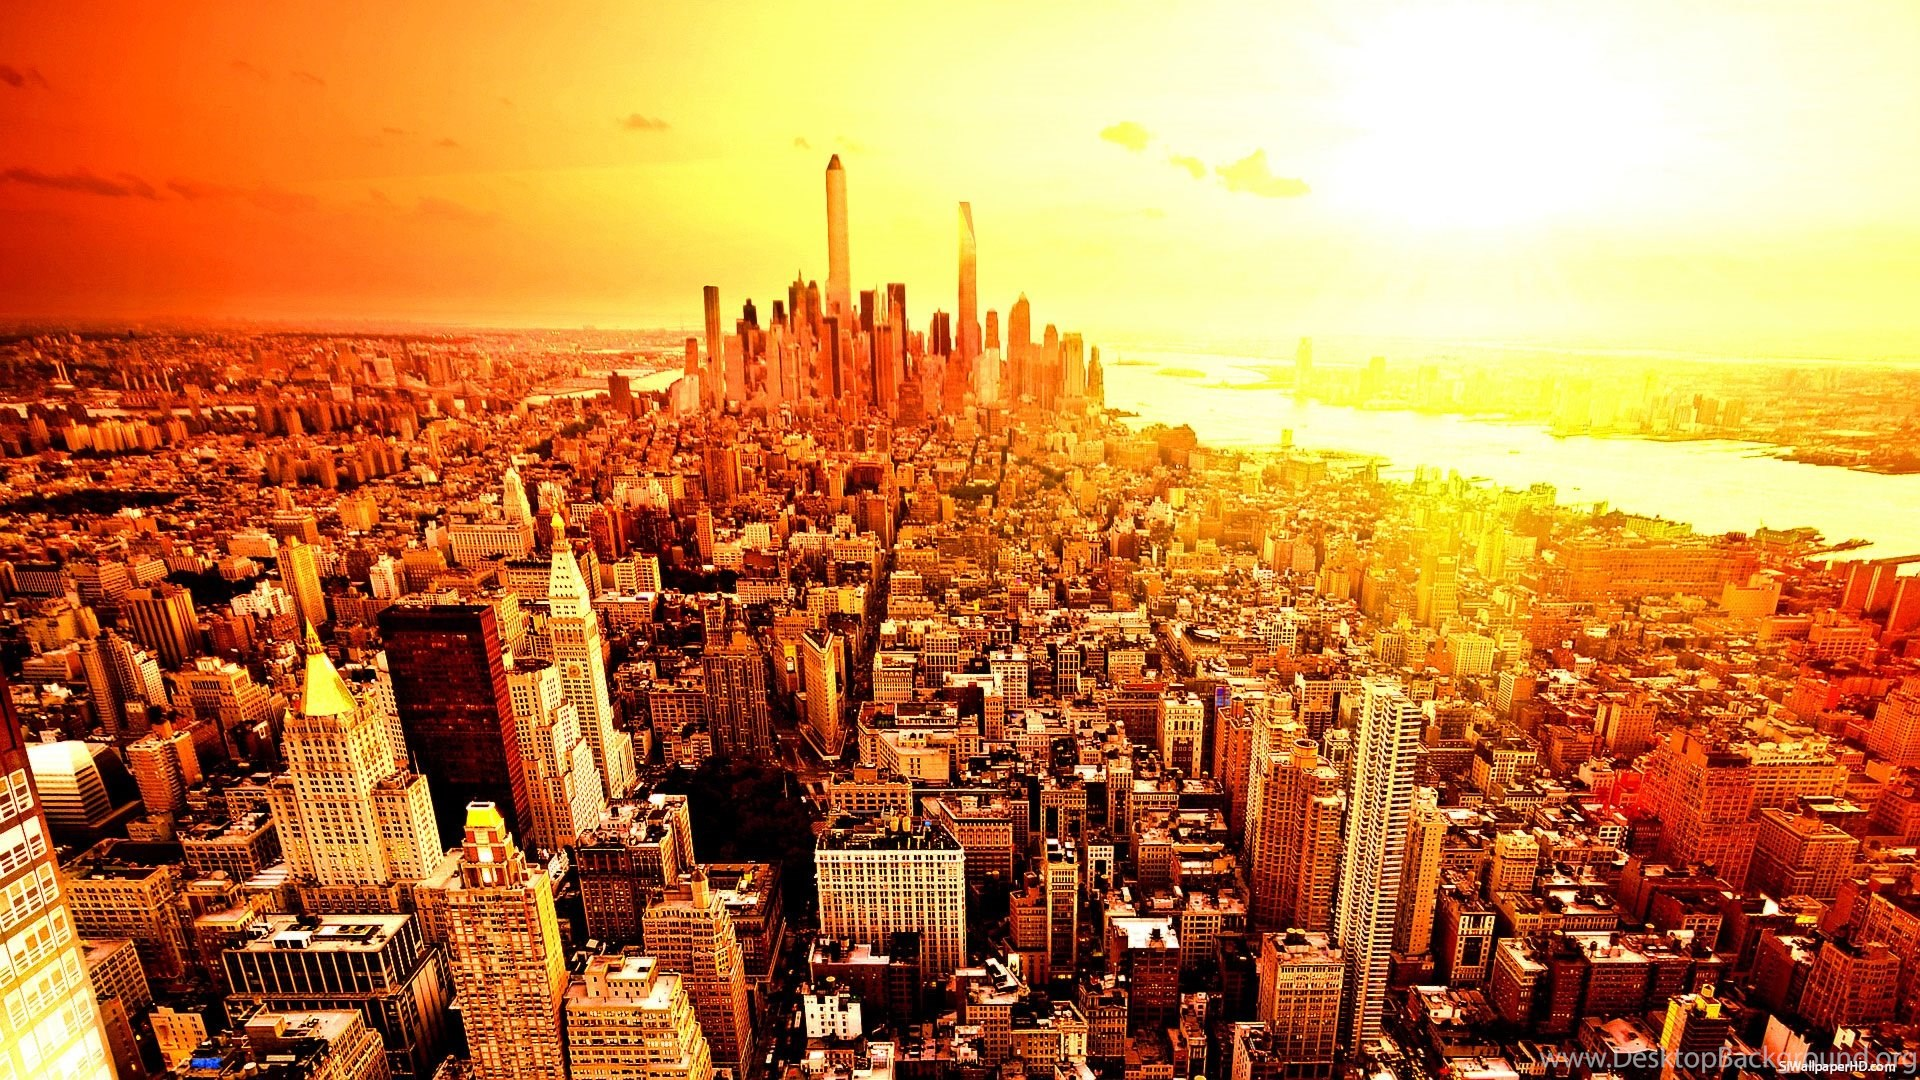 New York City Times Square Wallpapers Hd Wallpaper Backgrounds Desktop Background